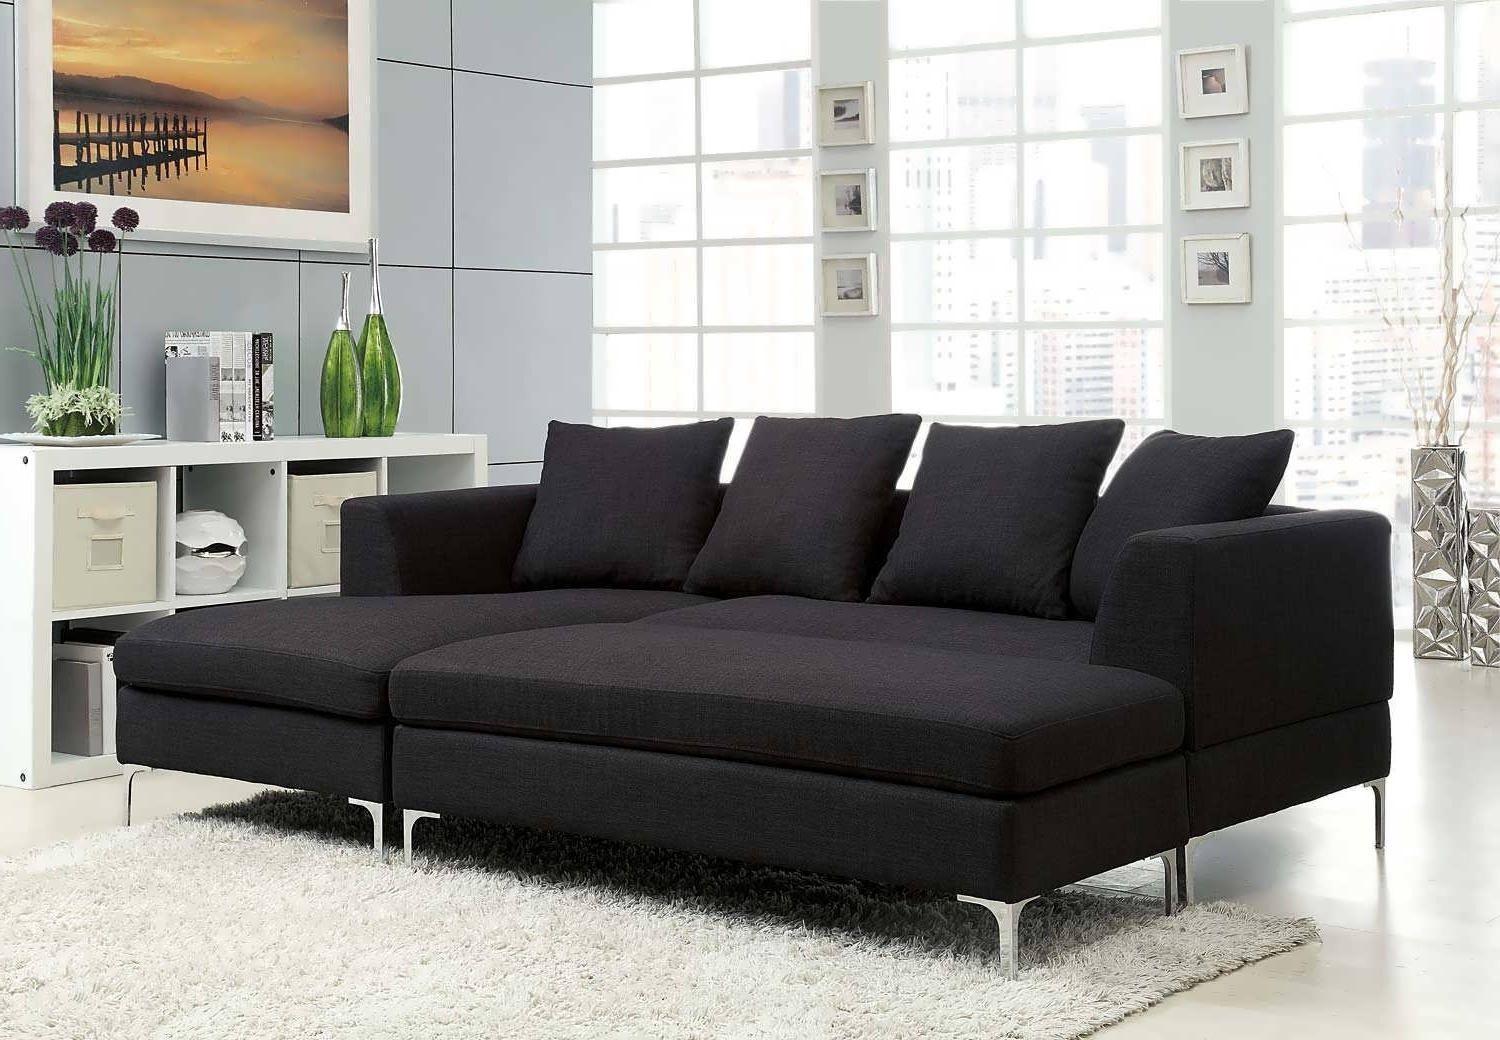 Sofa : Sectional Navy Blue Sectional Grey Leather Sectional Grey Throughout Latest Chaise Sofa Sectionals (View 3 of 15)